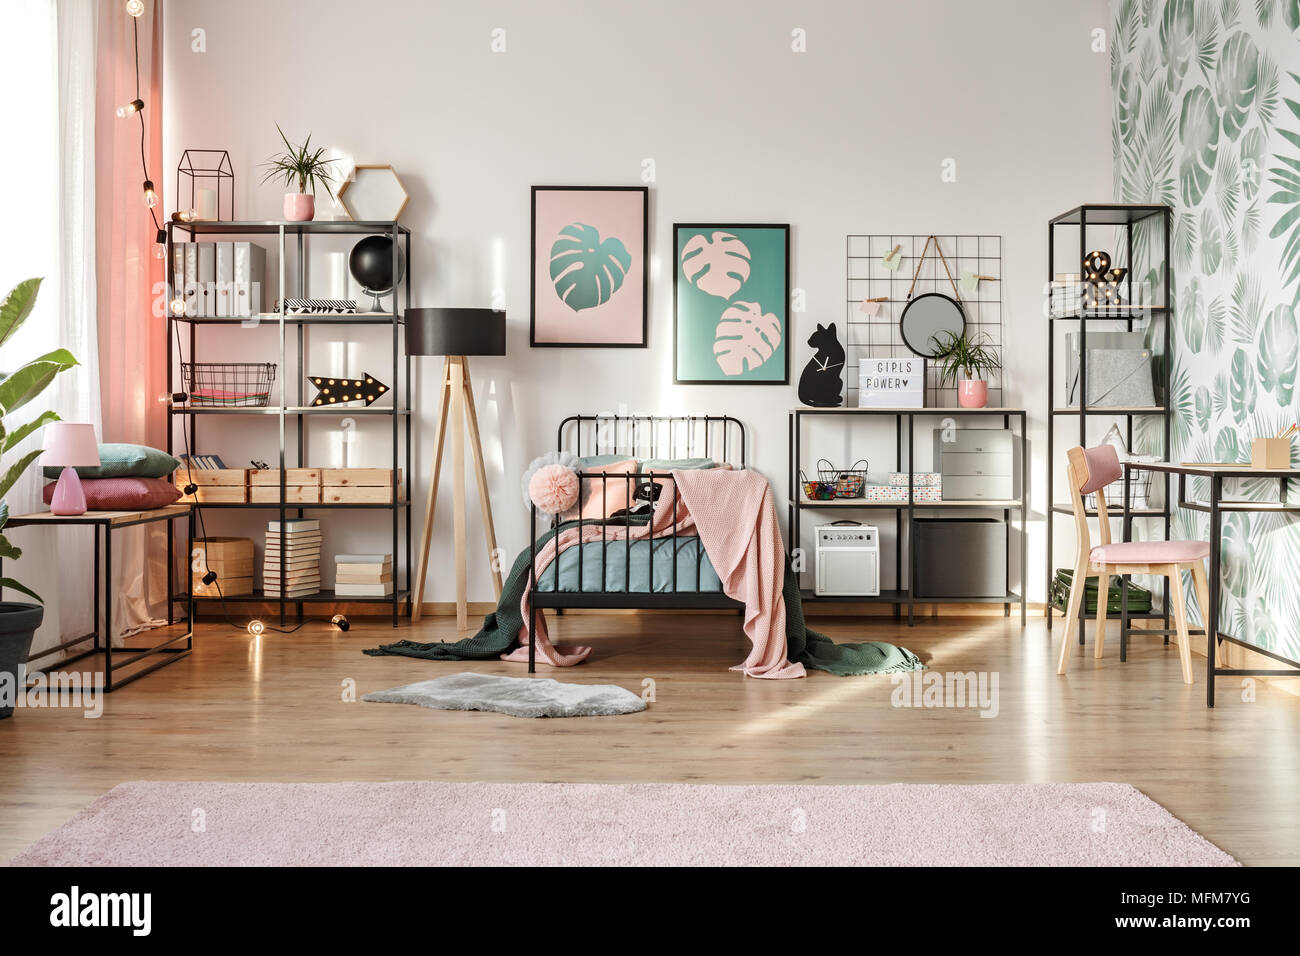 Pastel pink and emerald green decorations and textiles in botanical ...